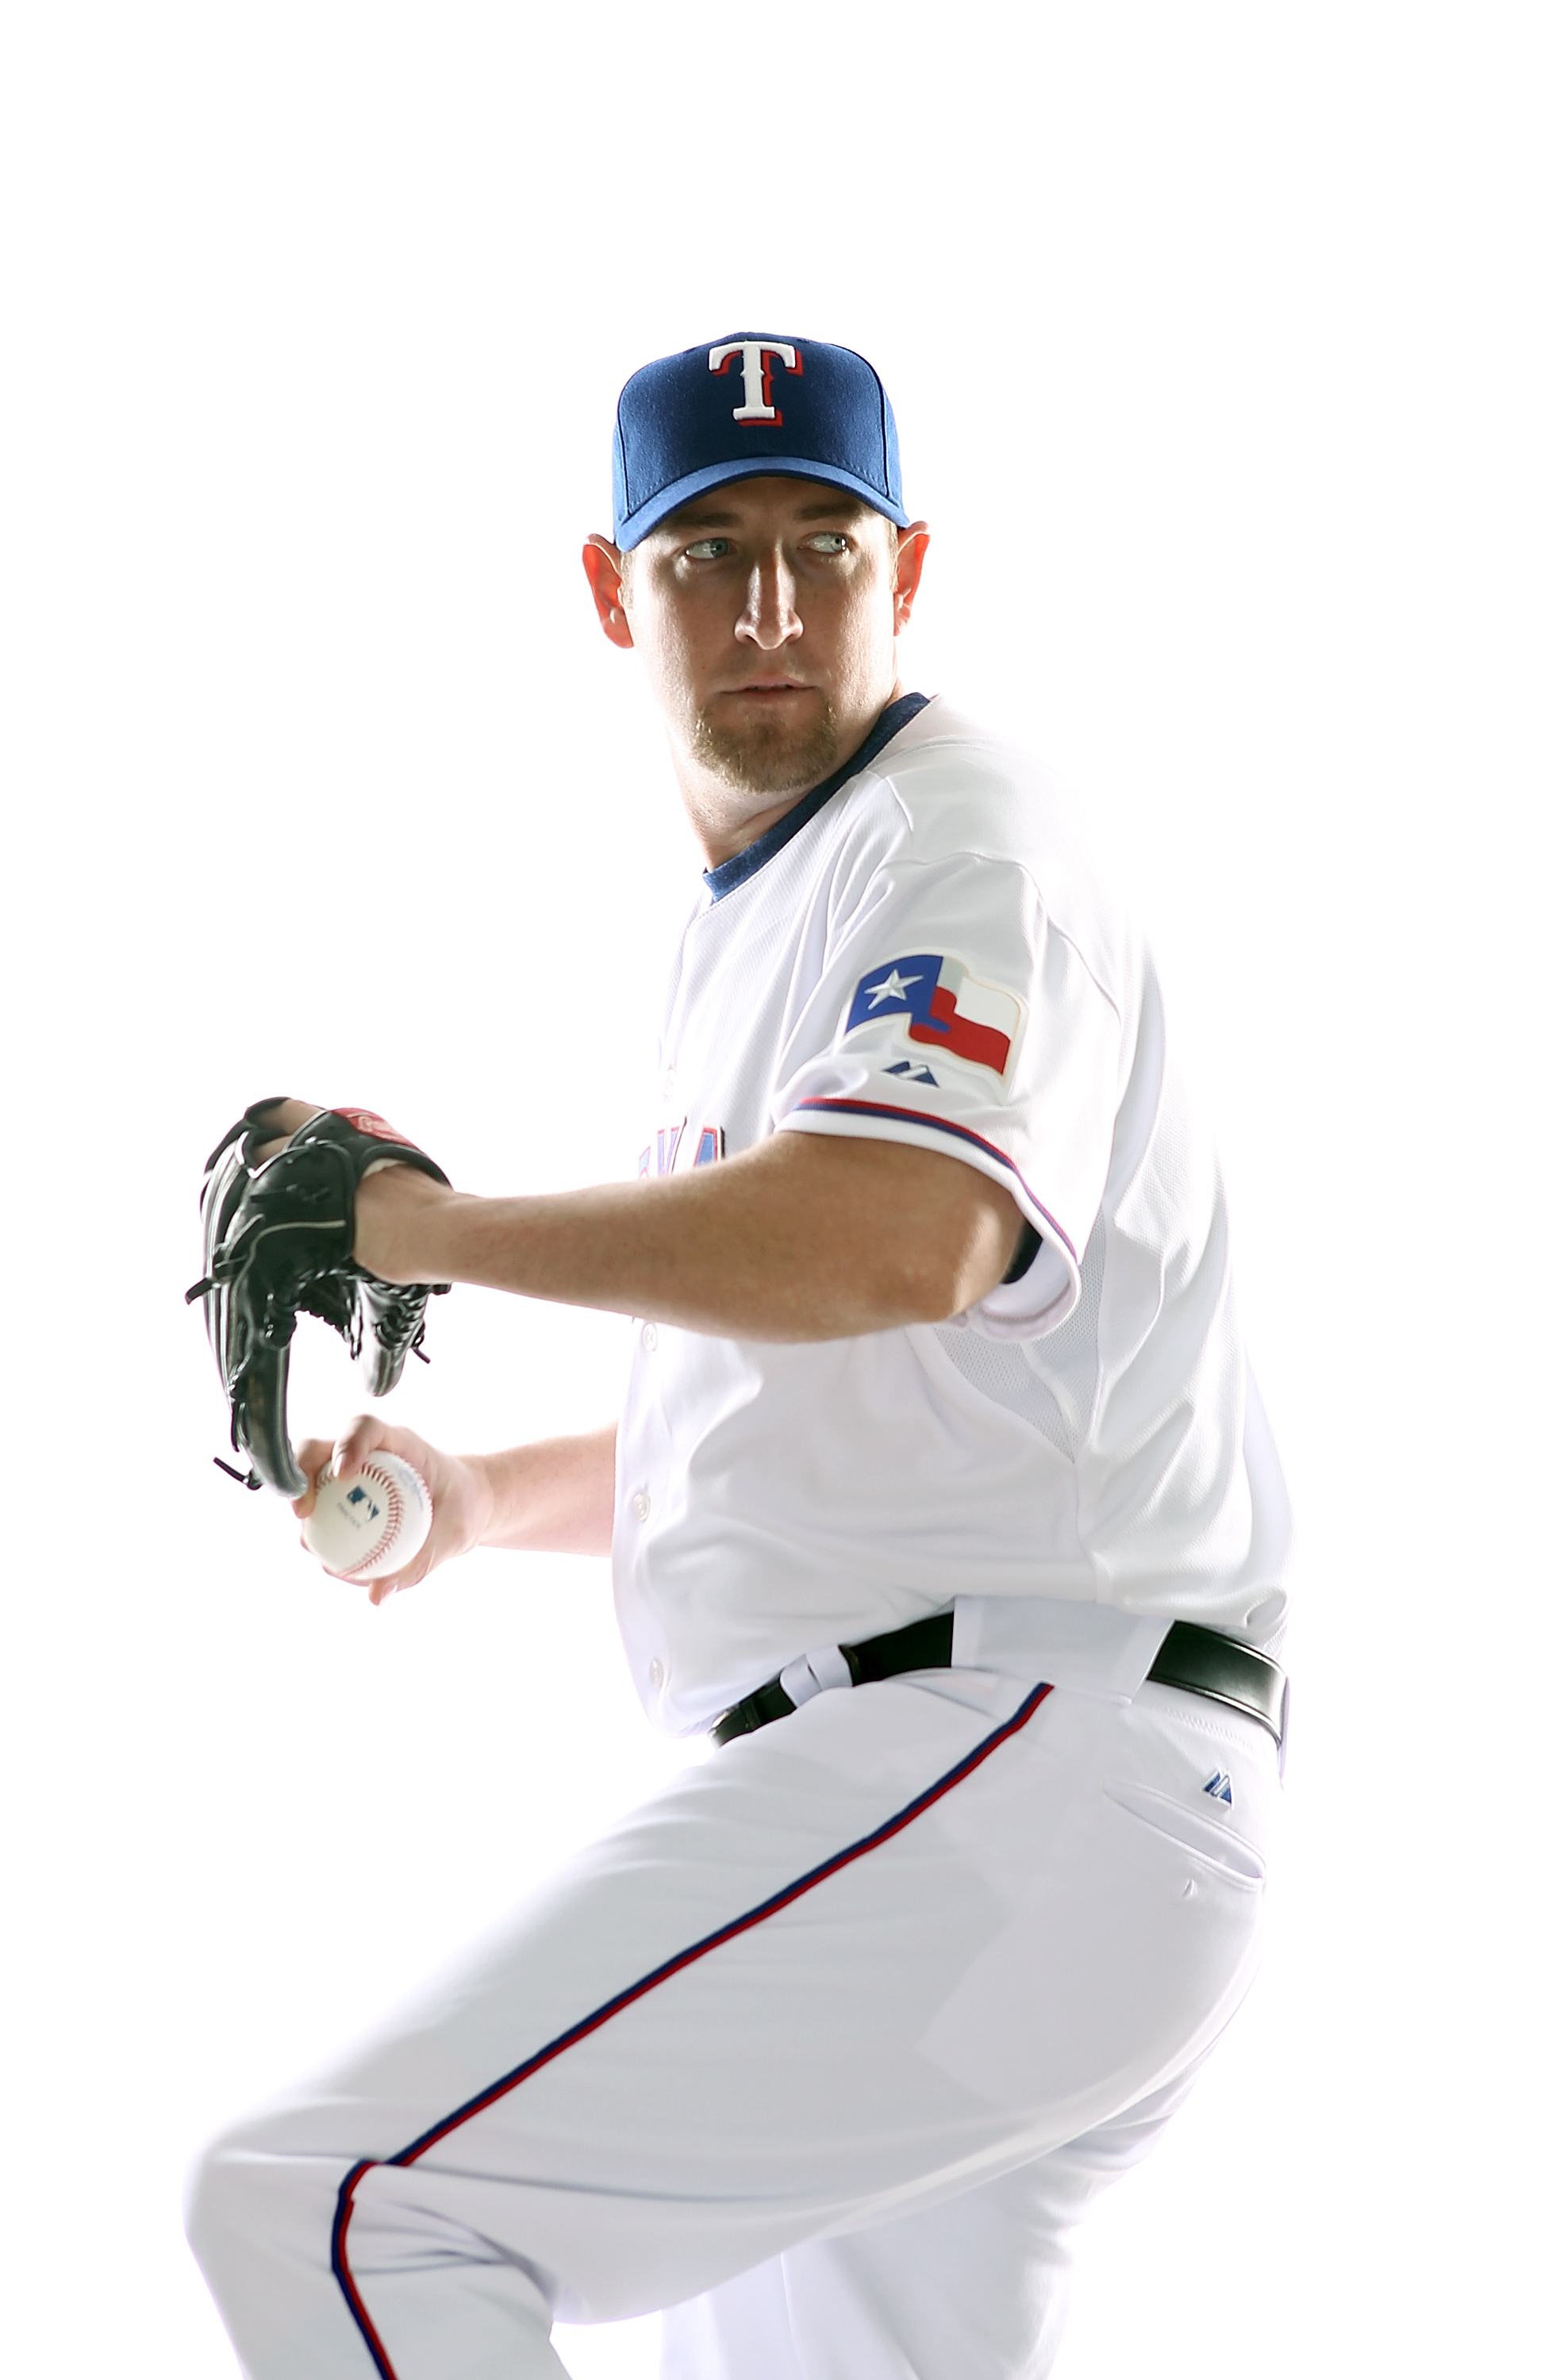 SURPRISE, AZ - FEBRUARY 25:  Brandon Webb #33 of the Texas Rangers poses for a portrait during Spring Training Media Day on February 25, 2011 at Surprise Stadium in Surprise, Arizona.  (Photo by Jonathan Ferrey/Getty Images)